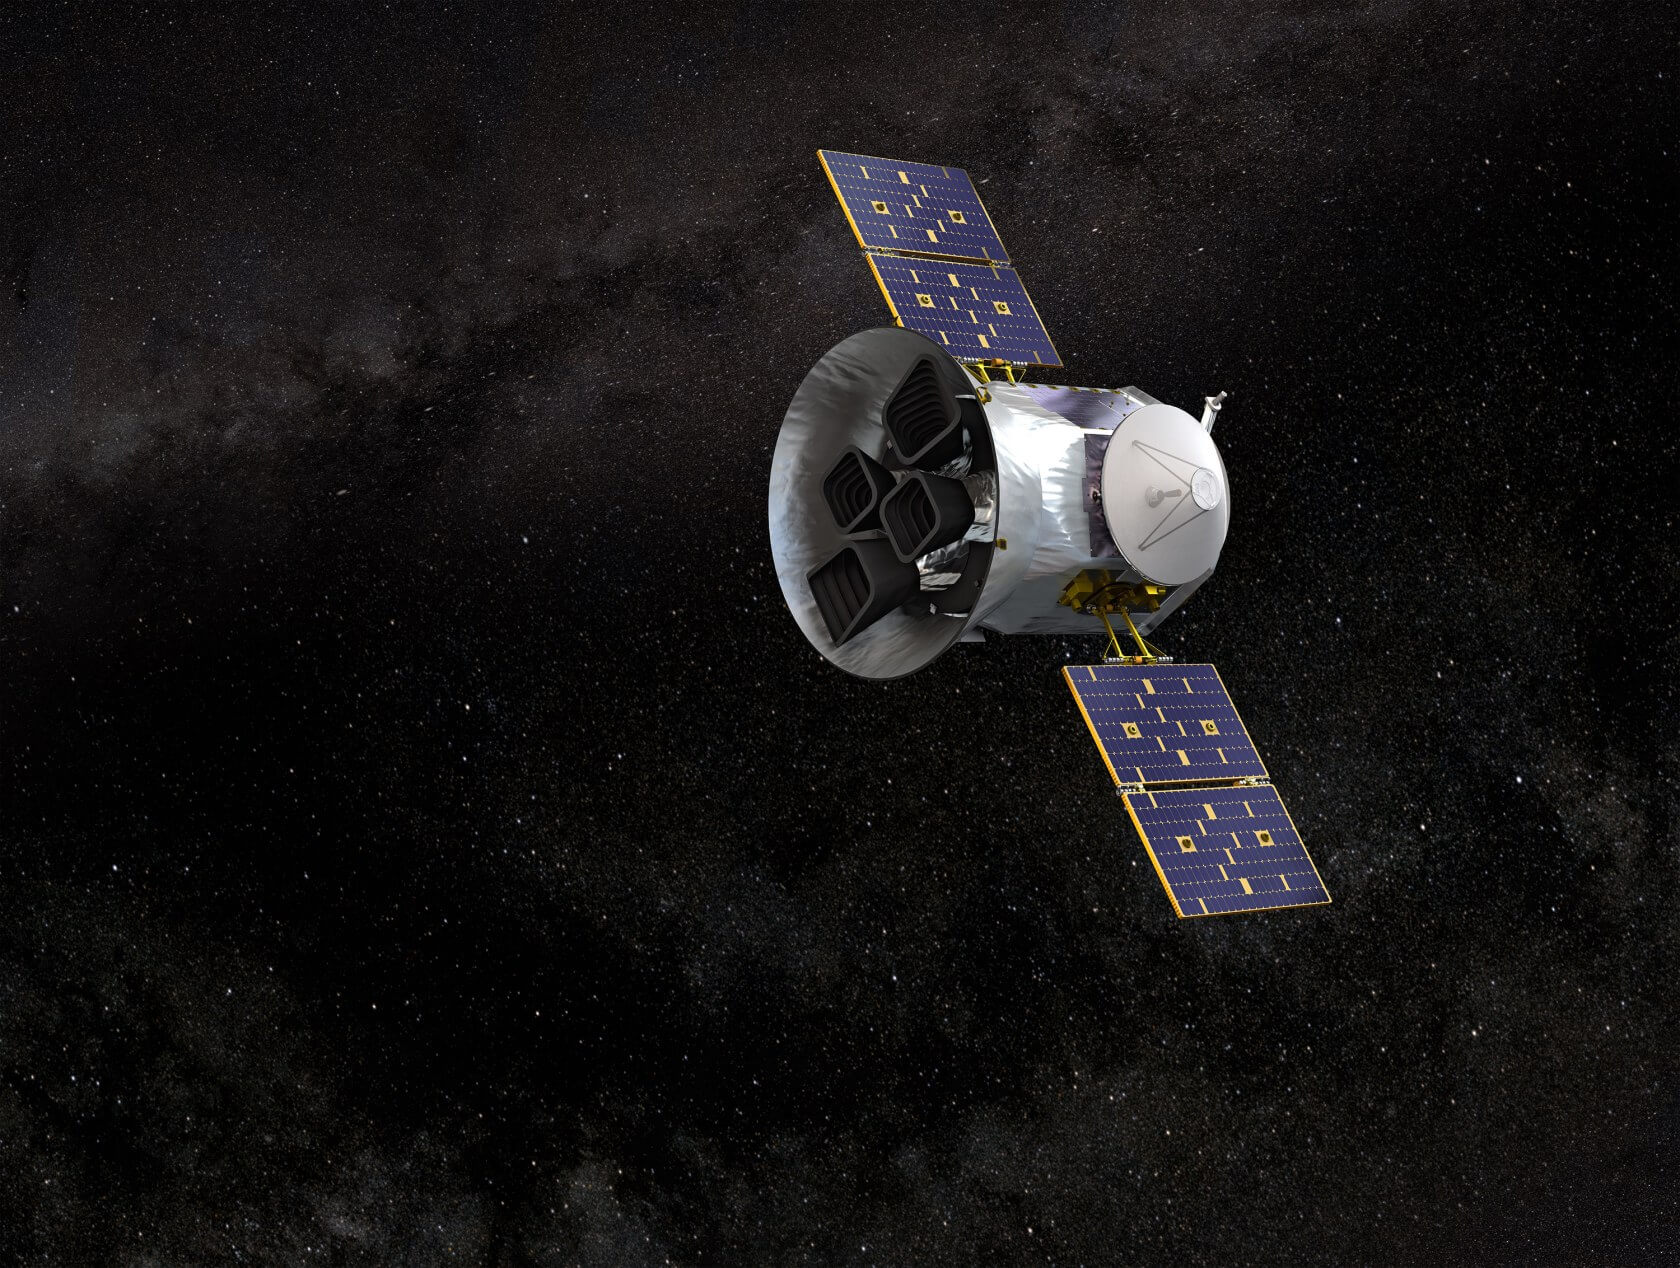 NASA's exoplanet-hunting TESS has found its first Earth-sized planet